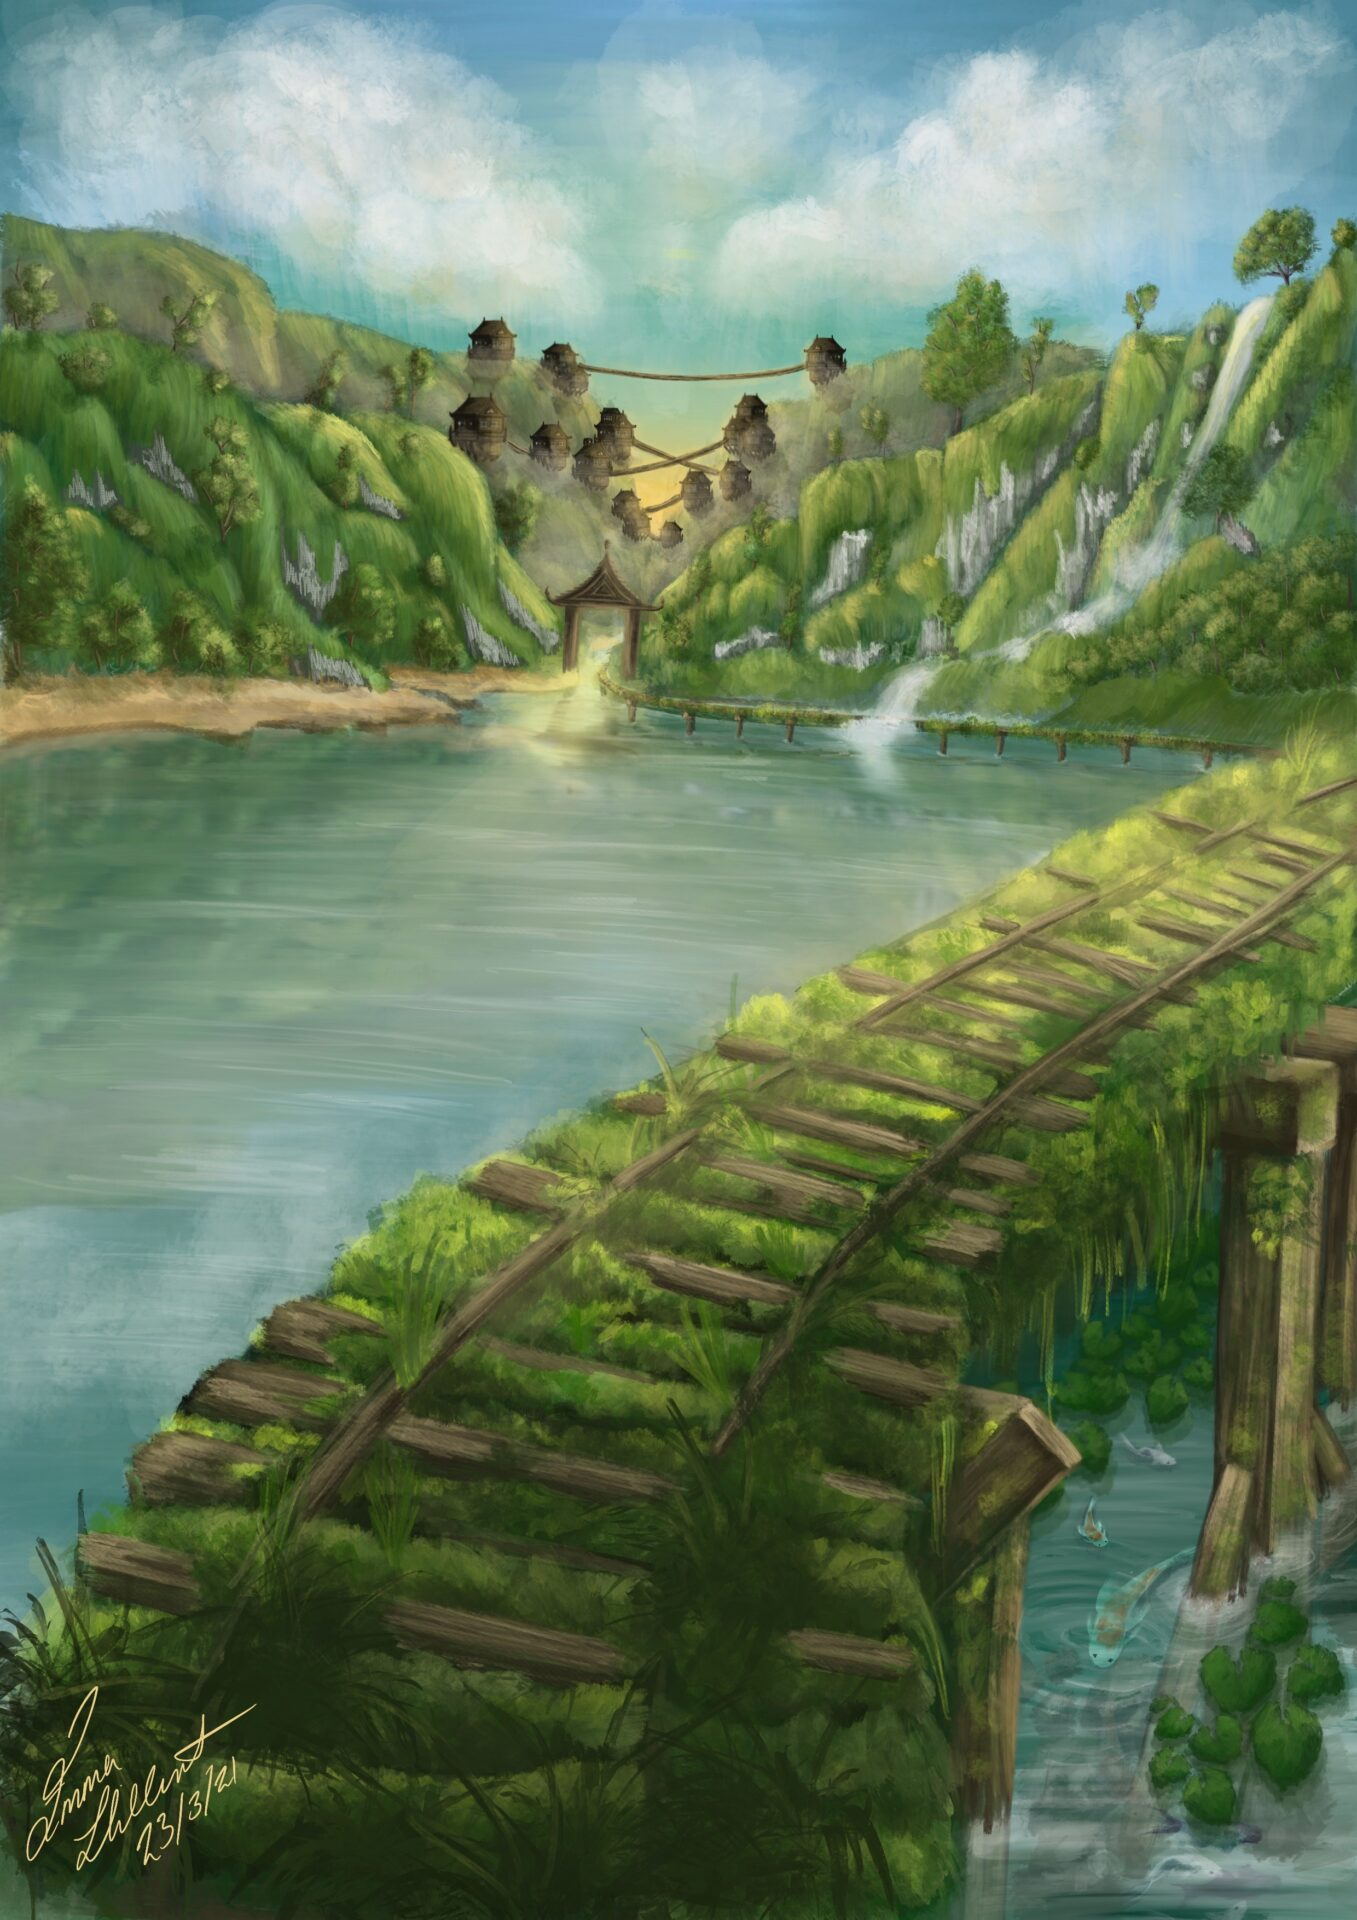 Emma has painted a valley with a river at the bottom, different hues of blue. At the bottom of the painting is the entrance to a wooden bridge covered in moss. The bridge curves to the right of the painting. At the end of the valley, there is a village.